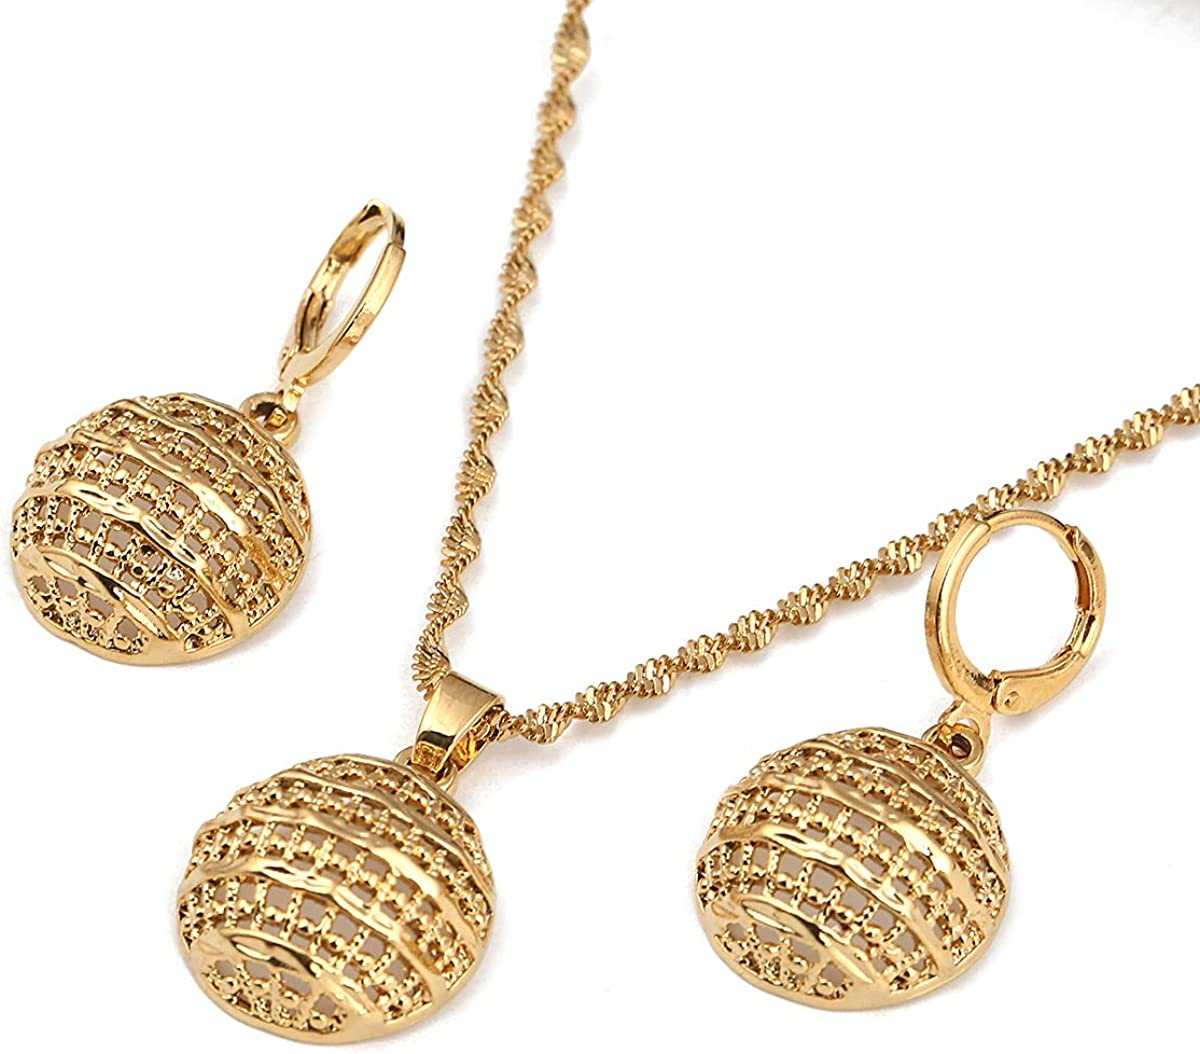 24k Gold Jewelry Set Necklace Earrings Pendant African Round Beads Jewelry Set for Women